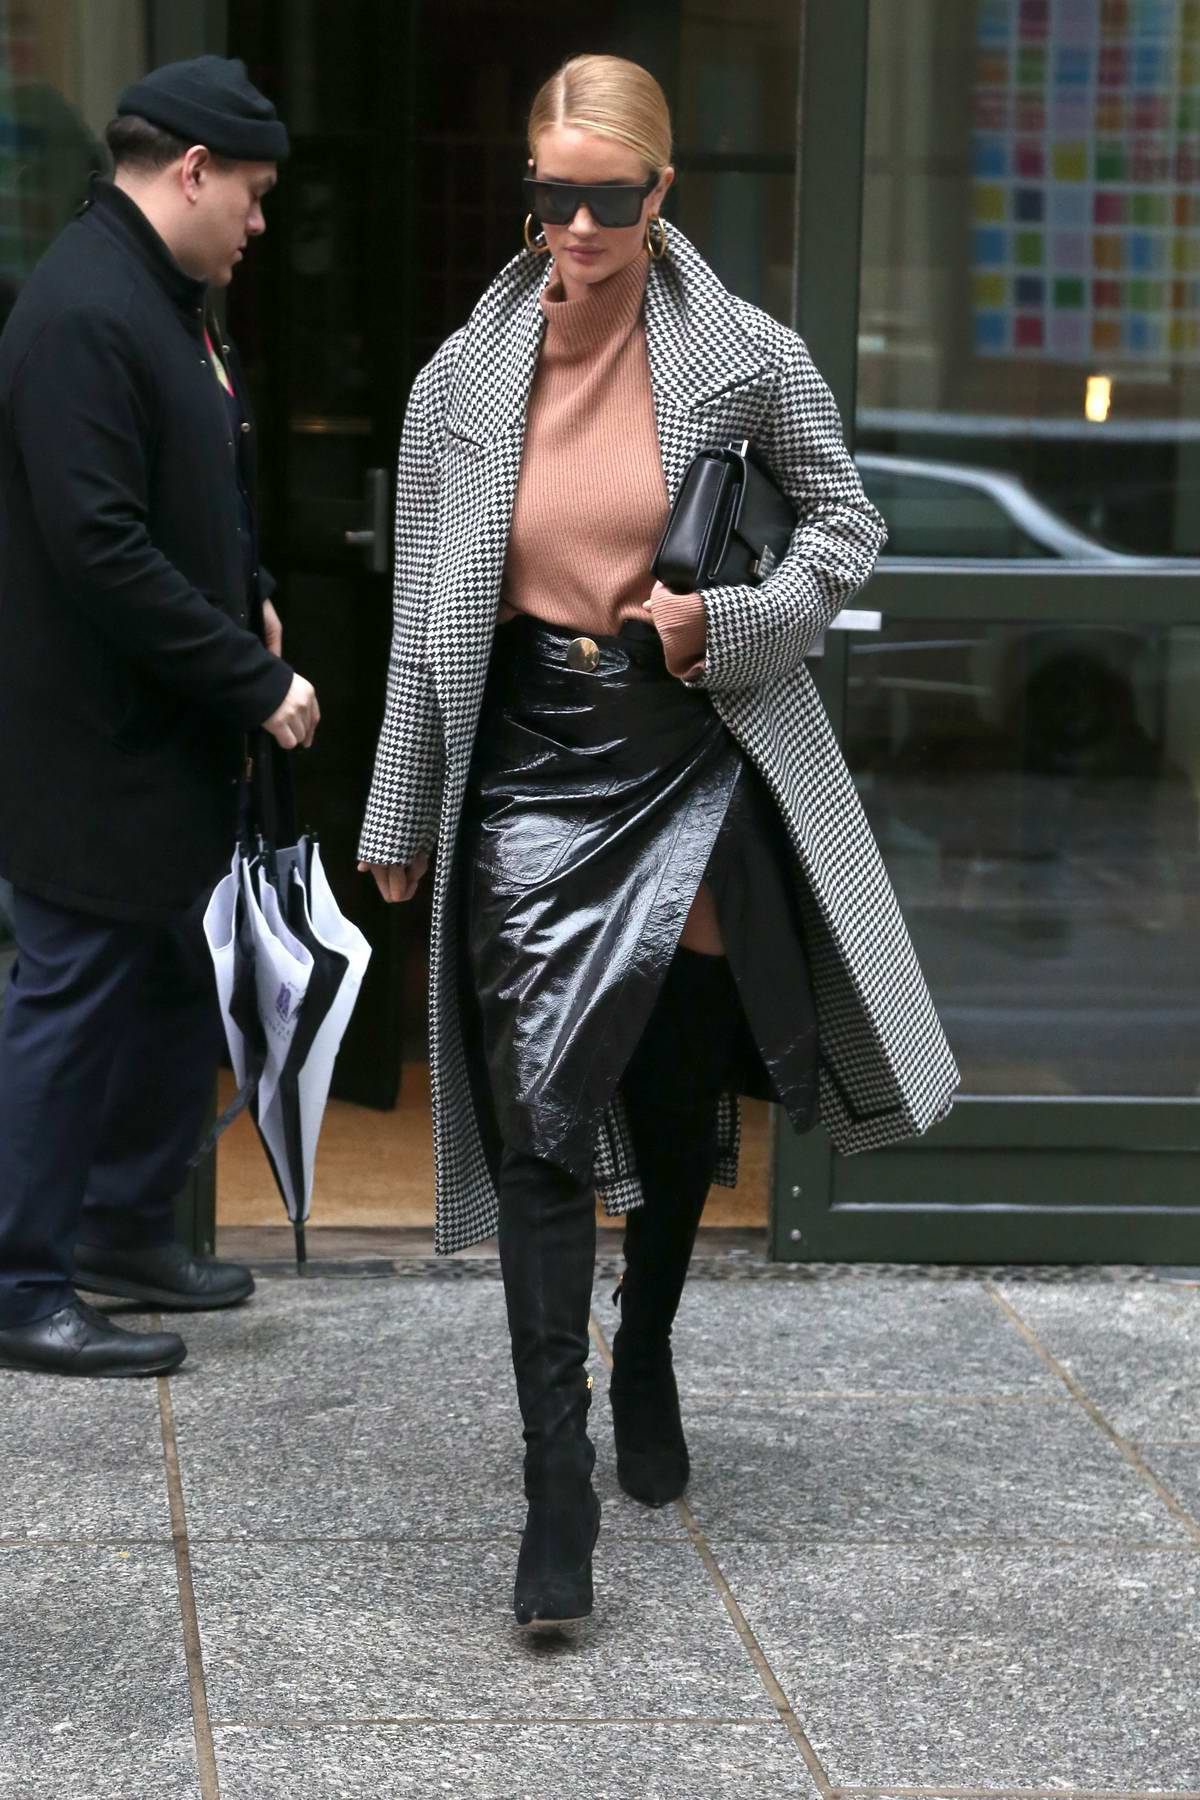 Rosie Huntington-Whiteley leaves her hotel wearing a checkered trench coat with black leather skirt and thigh high boots in New York City